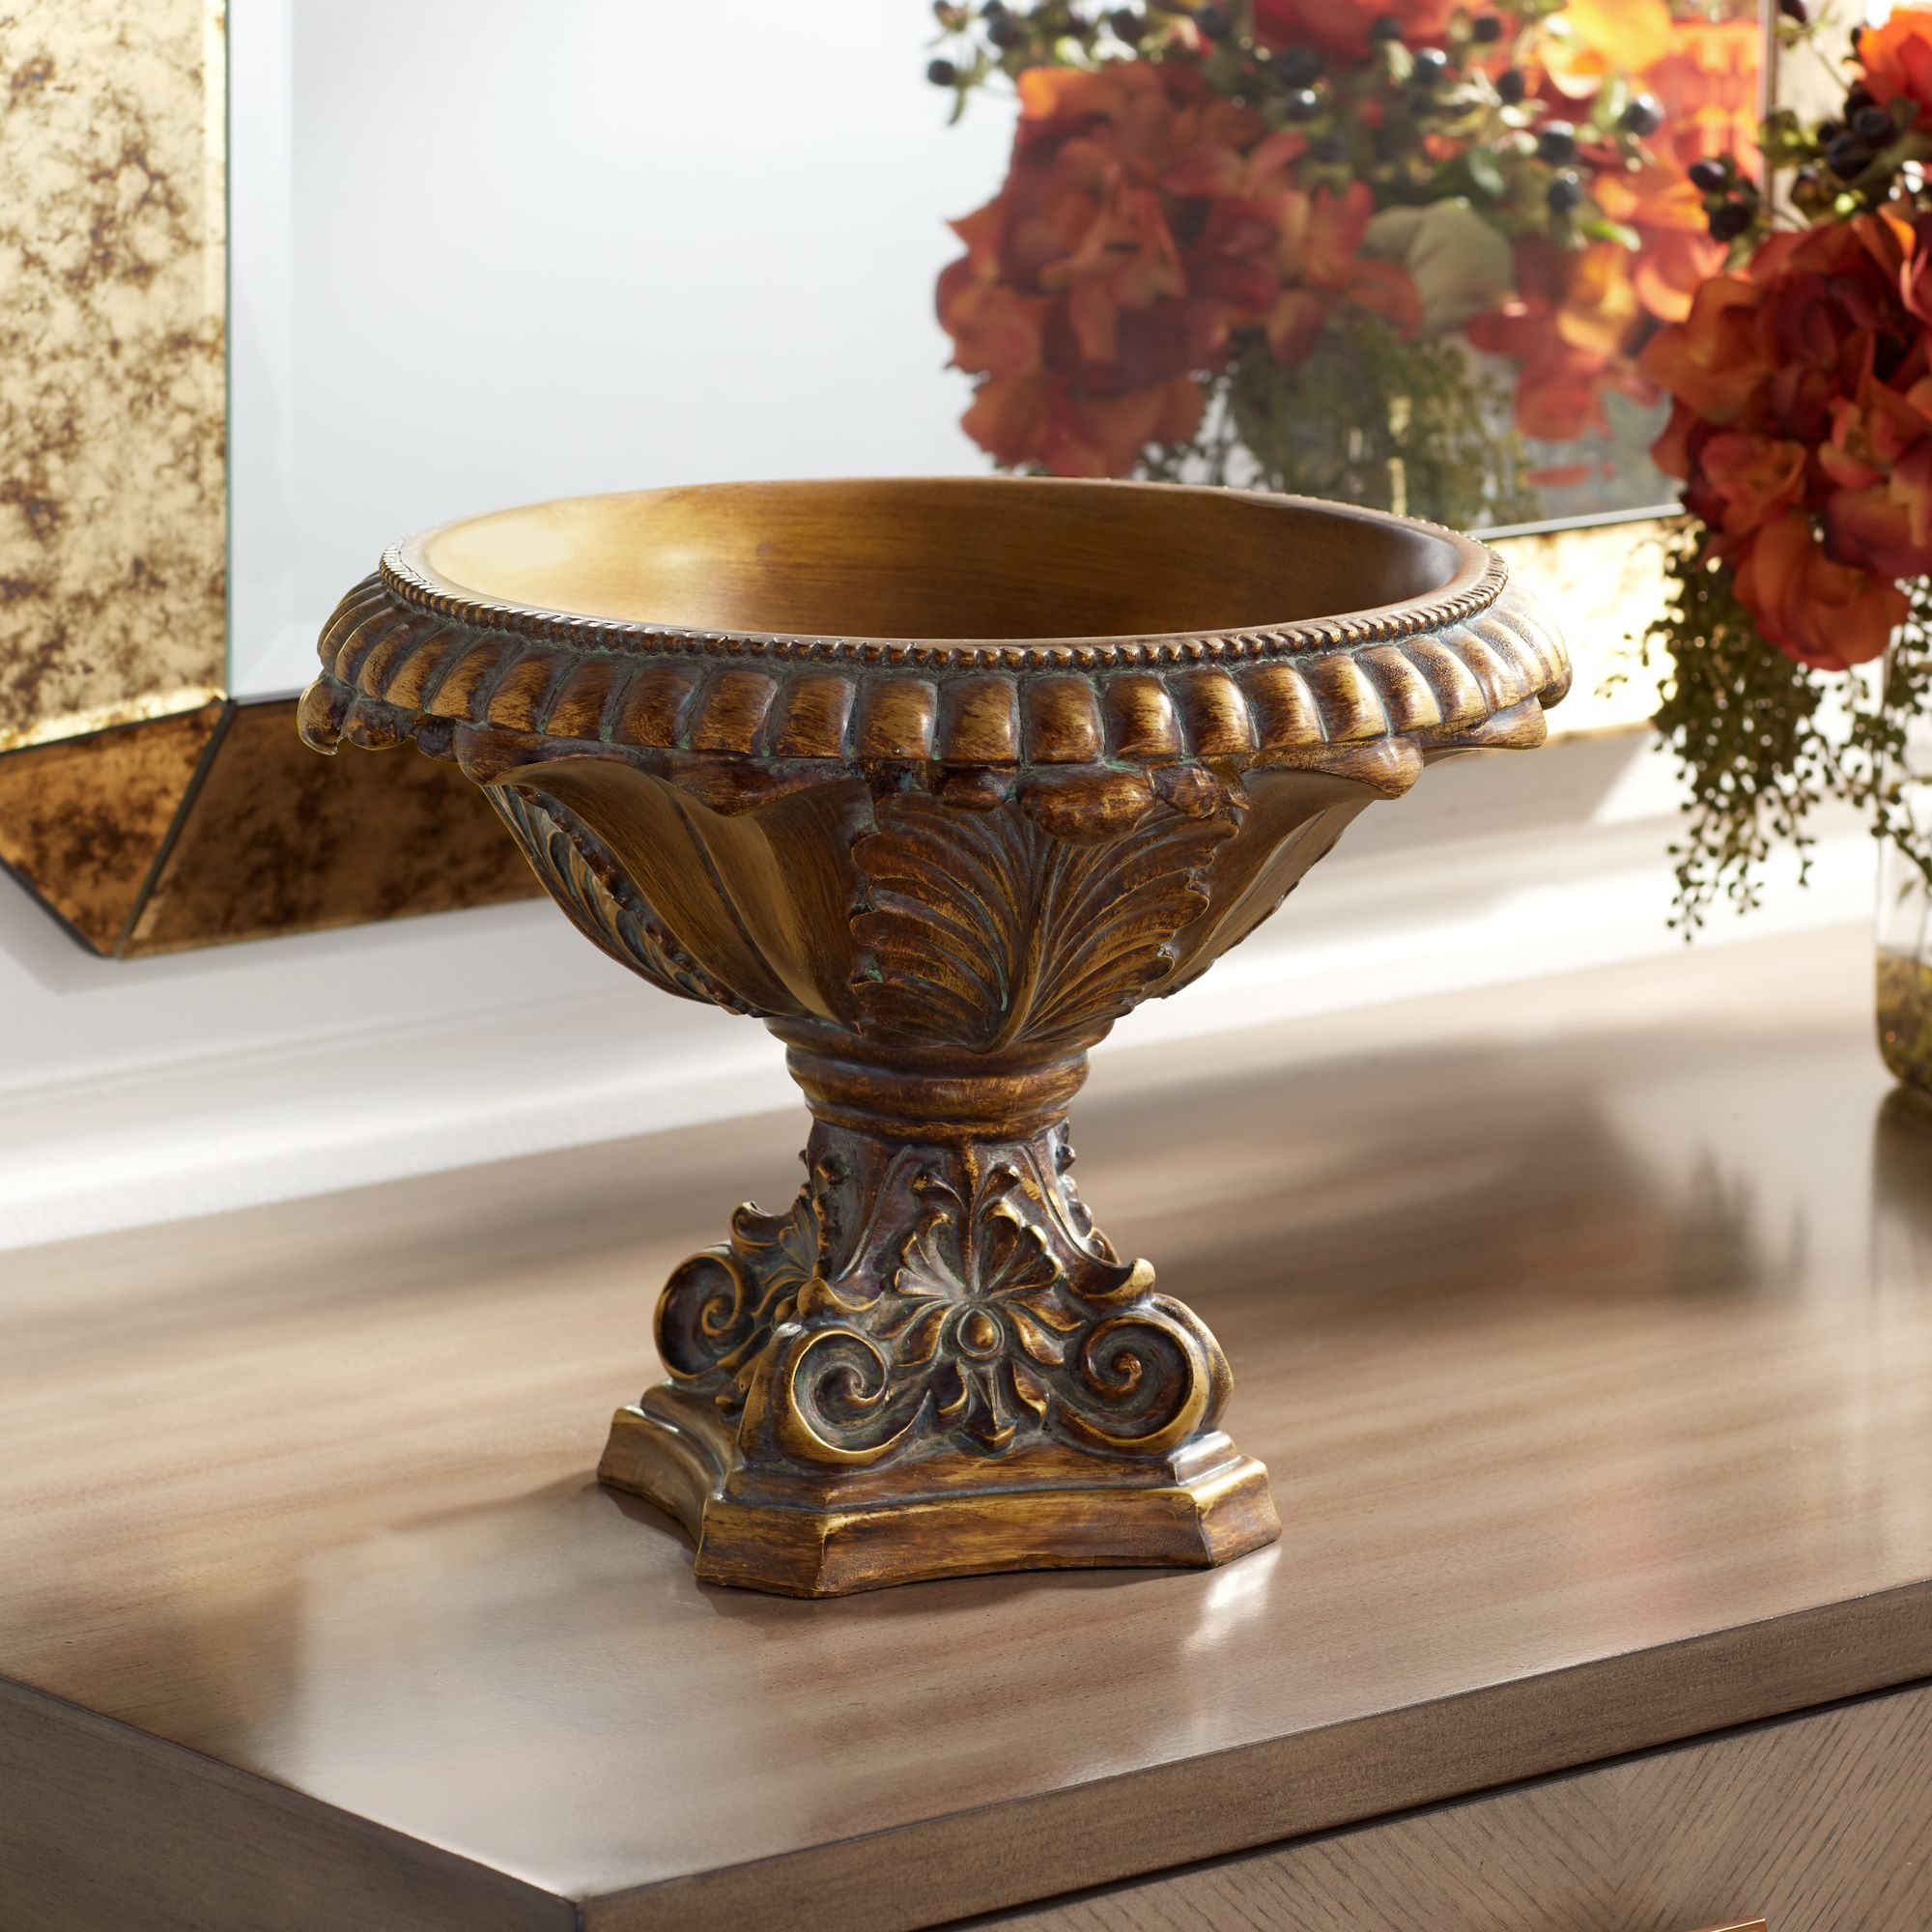 Home with images decorative bowls bronze finish bowl